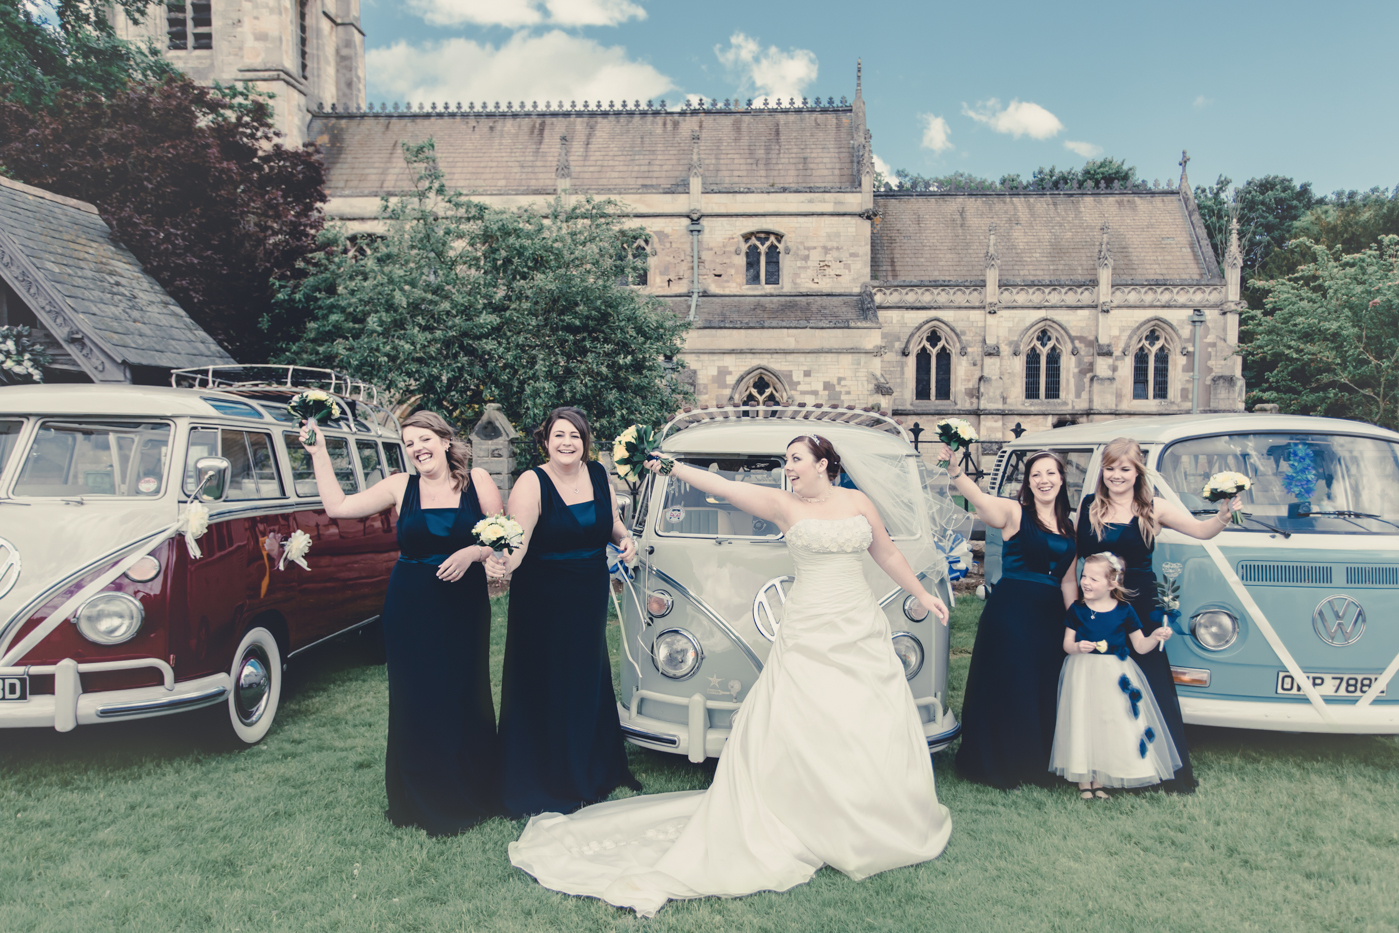 265 - Chris and Natalies Wedding (MAIN) - DO NOT SHARE THIS IMAGES ONLINE -0340.JPG